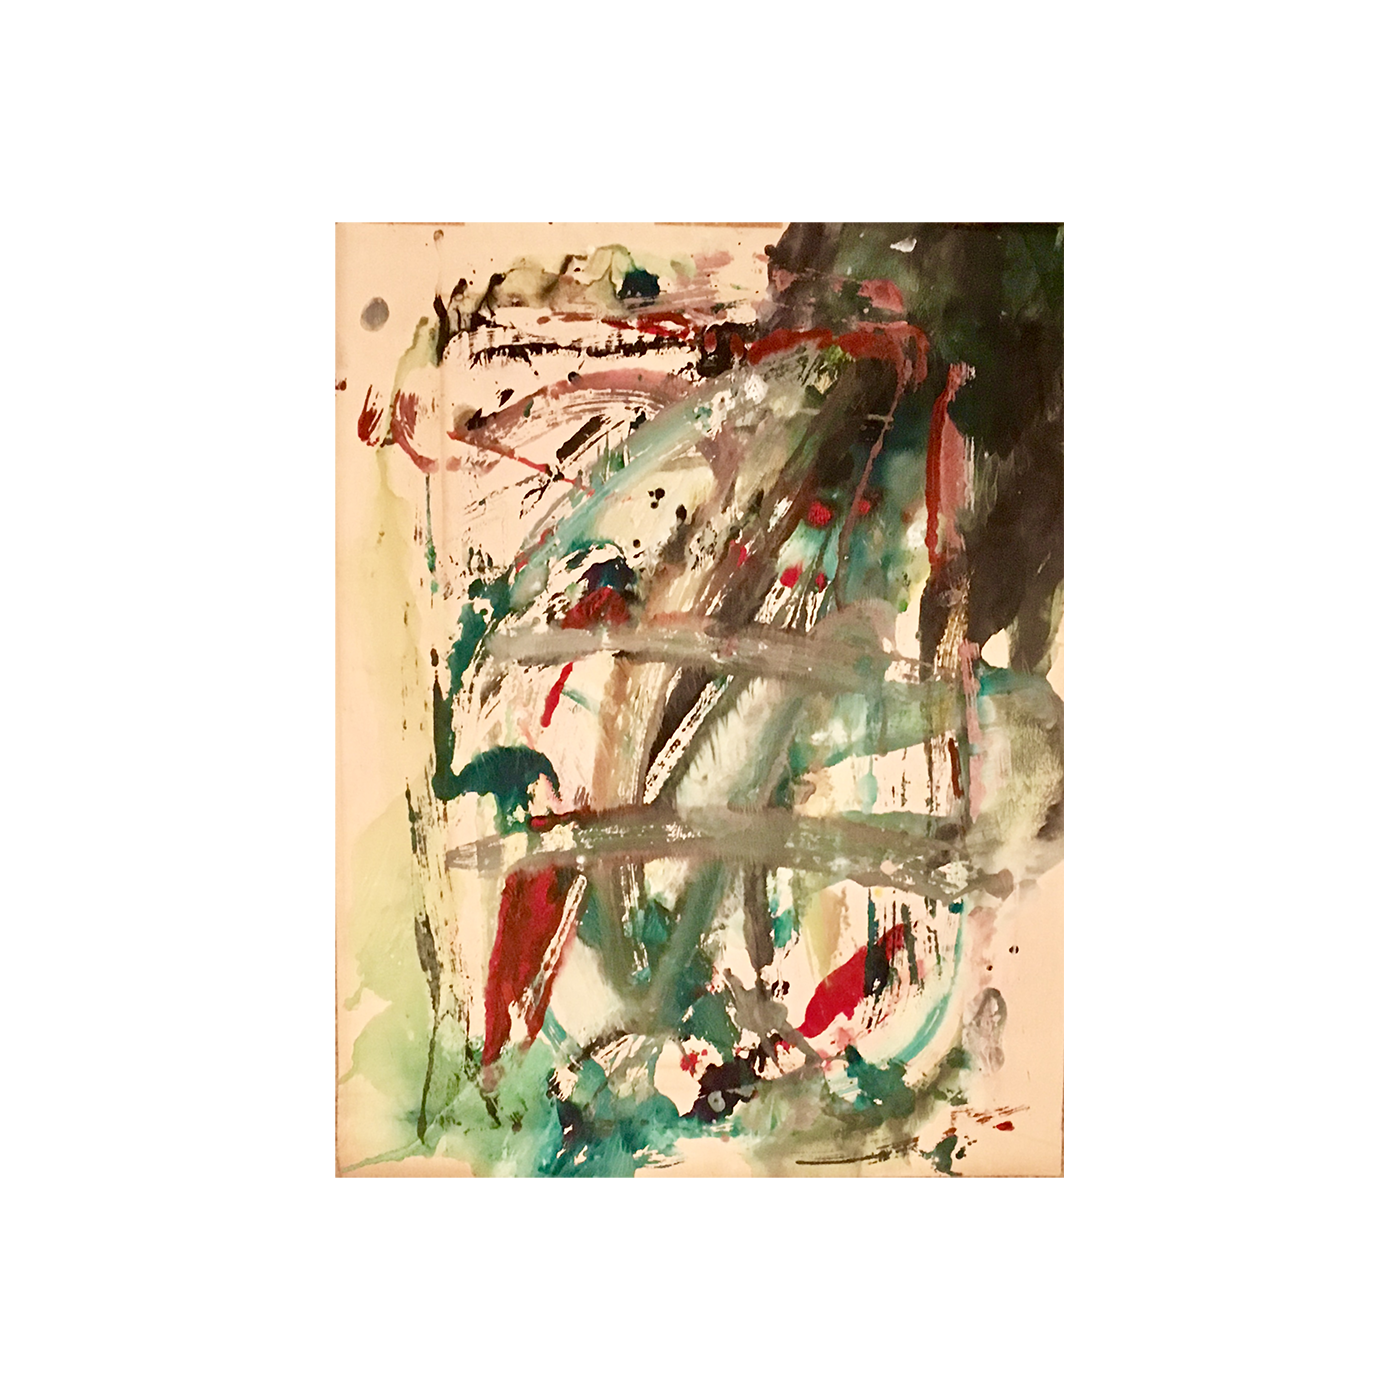 American School Abstract Expressionist signed and dated 1963